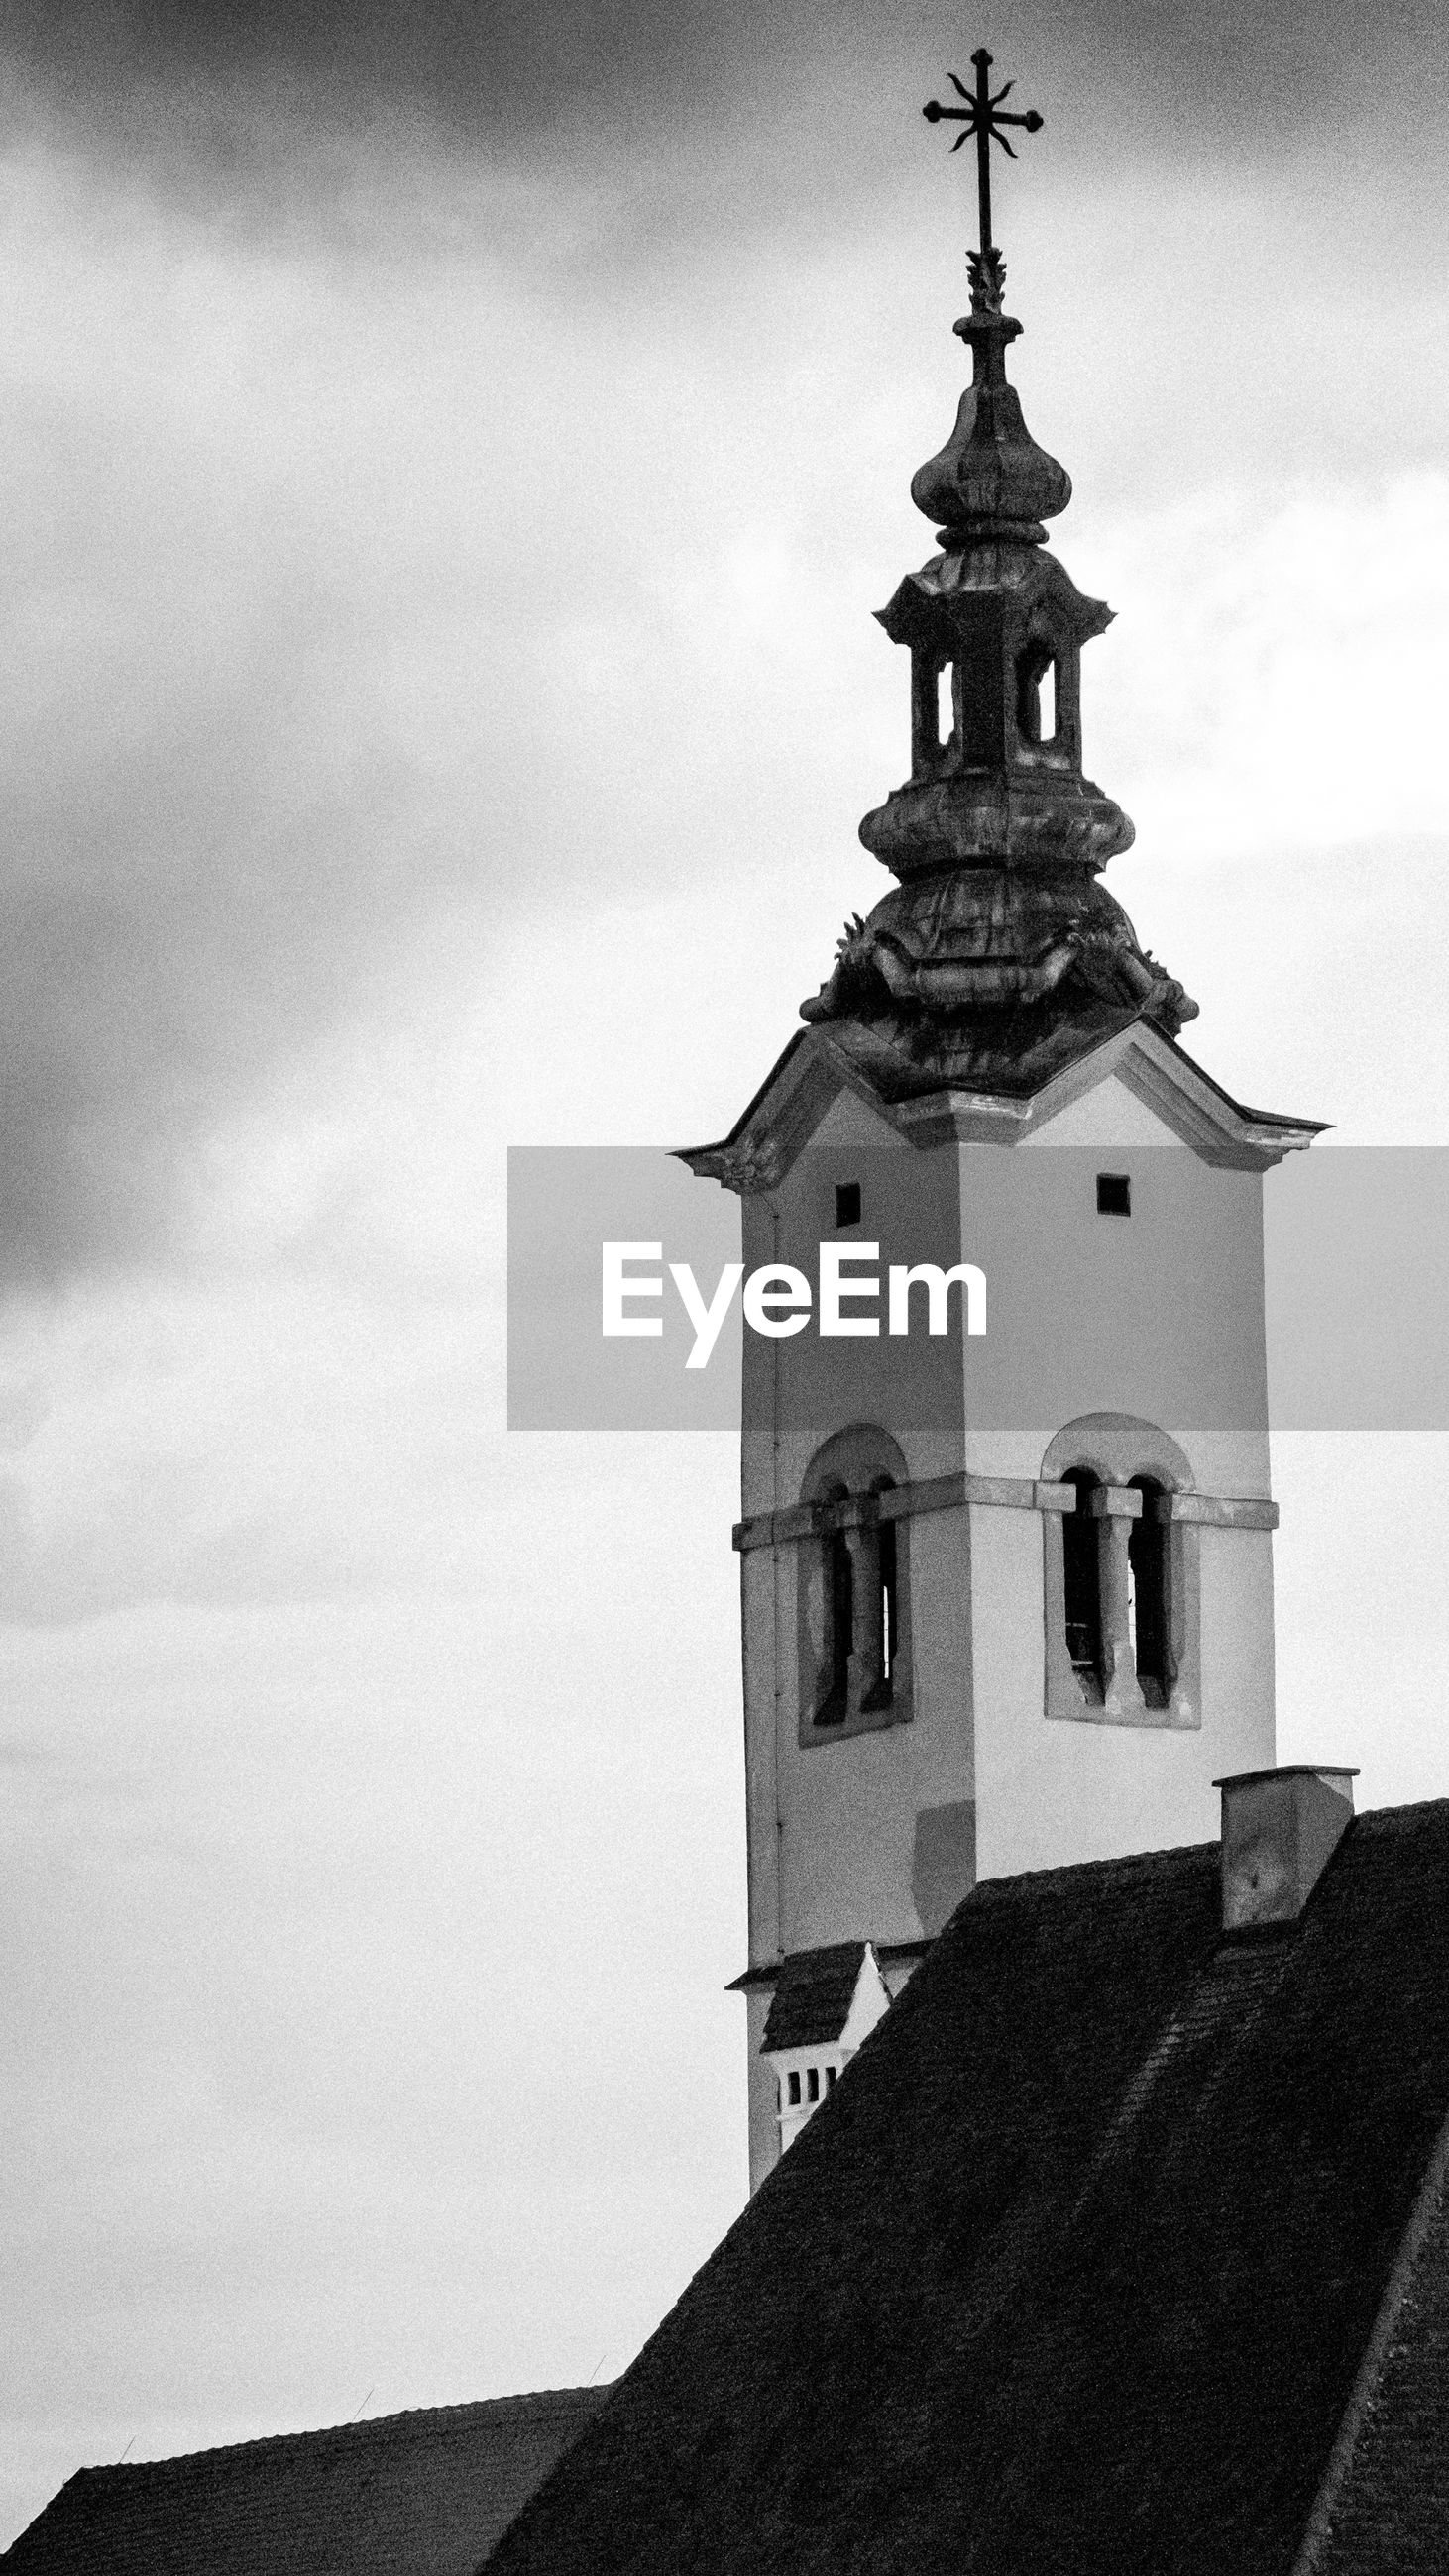 religion, sky, place of worship, spirituality, cloud - sky, architecture, tower, built structure, low angle view, bell tower, no people, day, outdoors, bell, cross, building exterior, history, clock tower, travel destinations, nature, clock